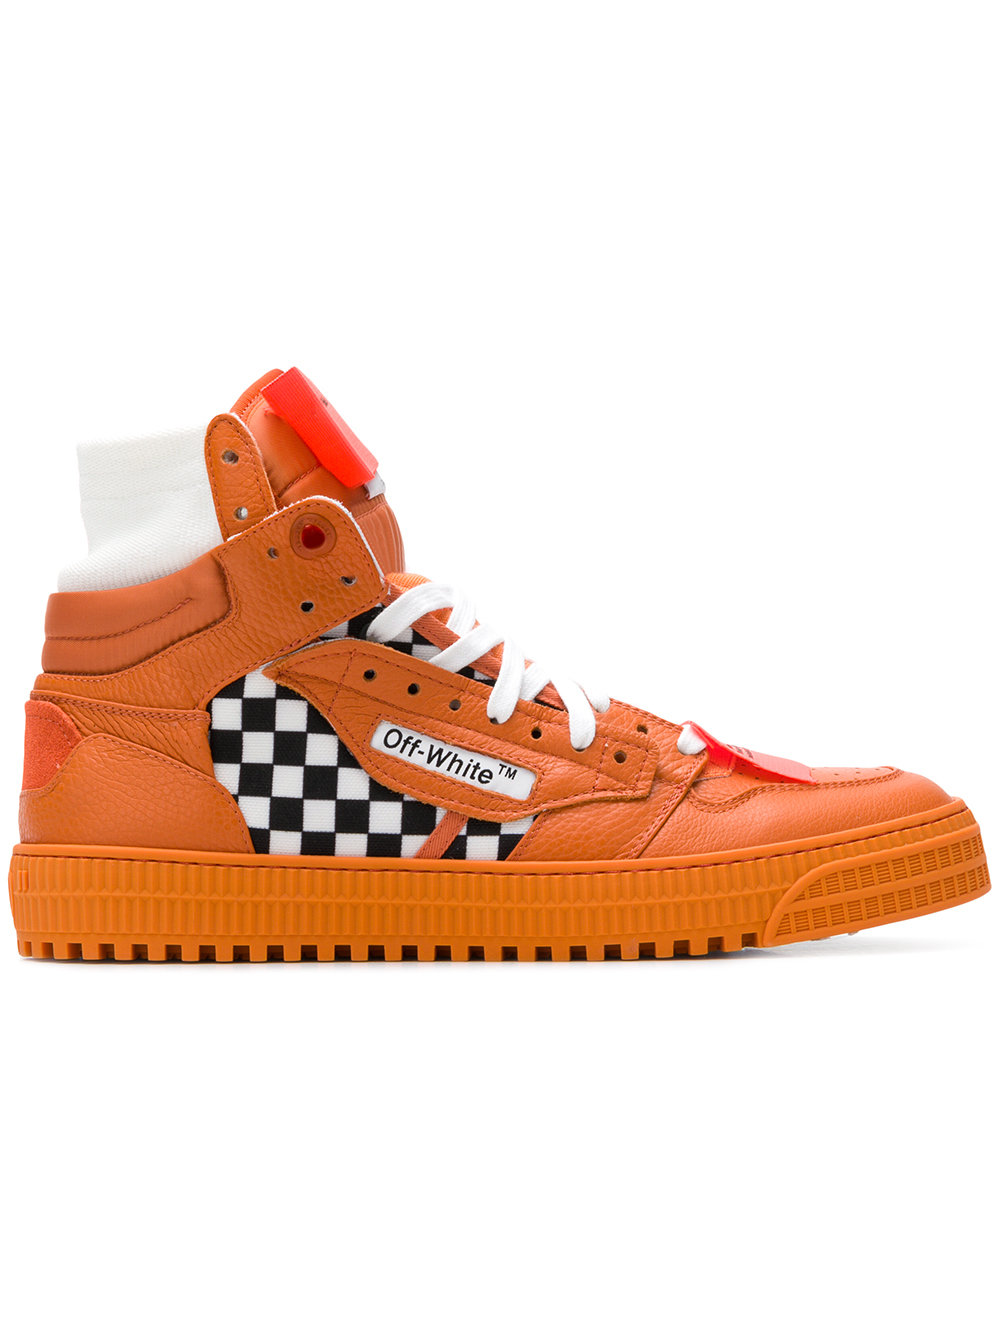 Off-White   Orange Low 3.0 Sneaker